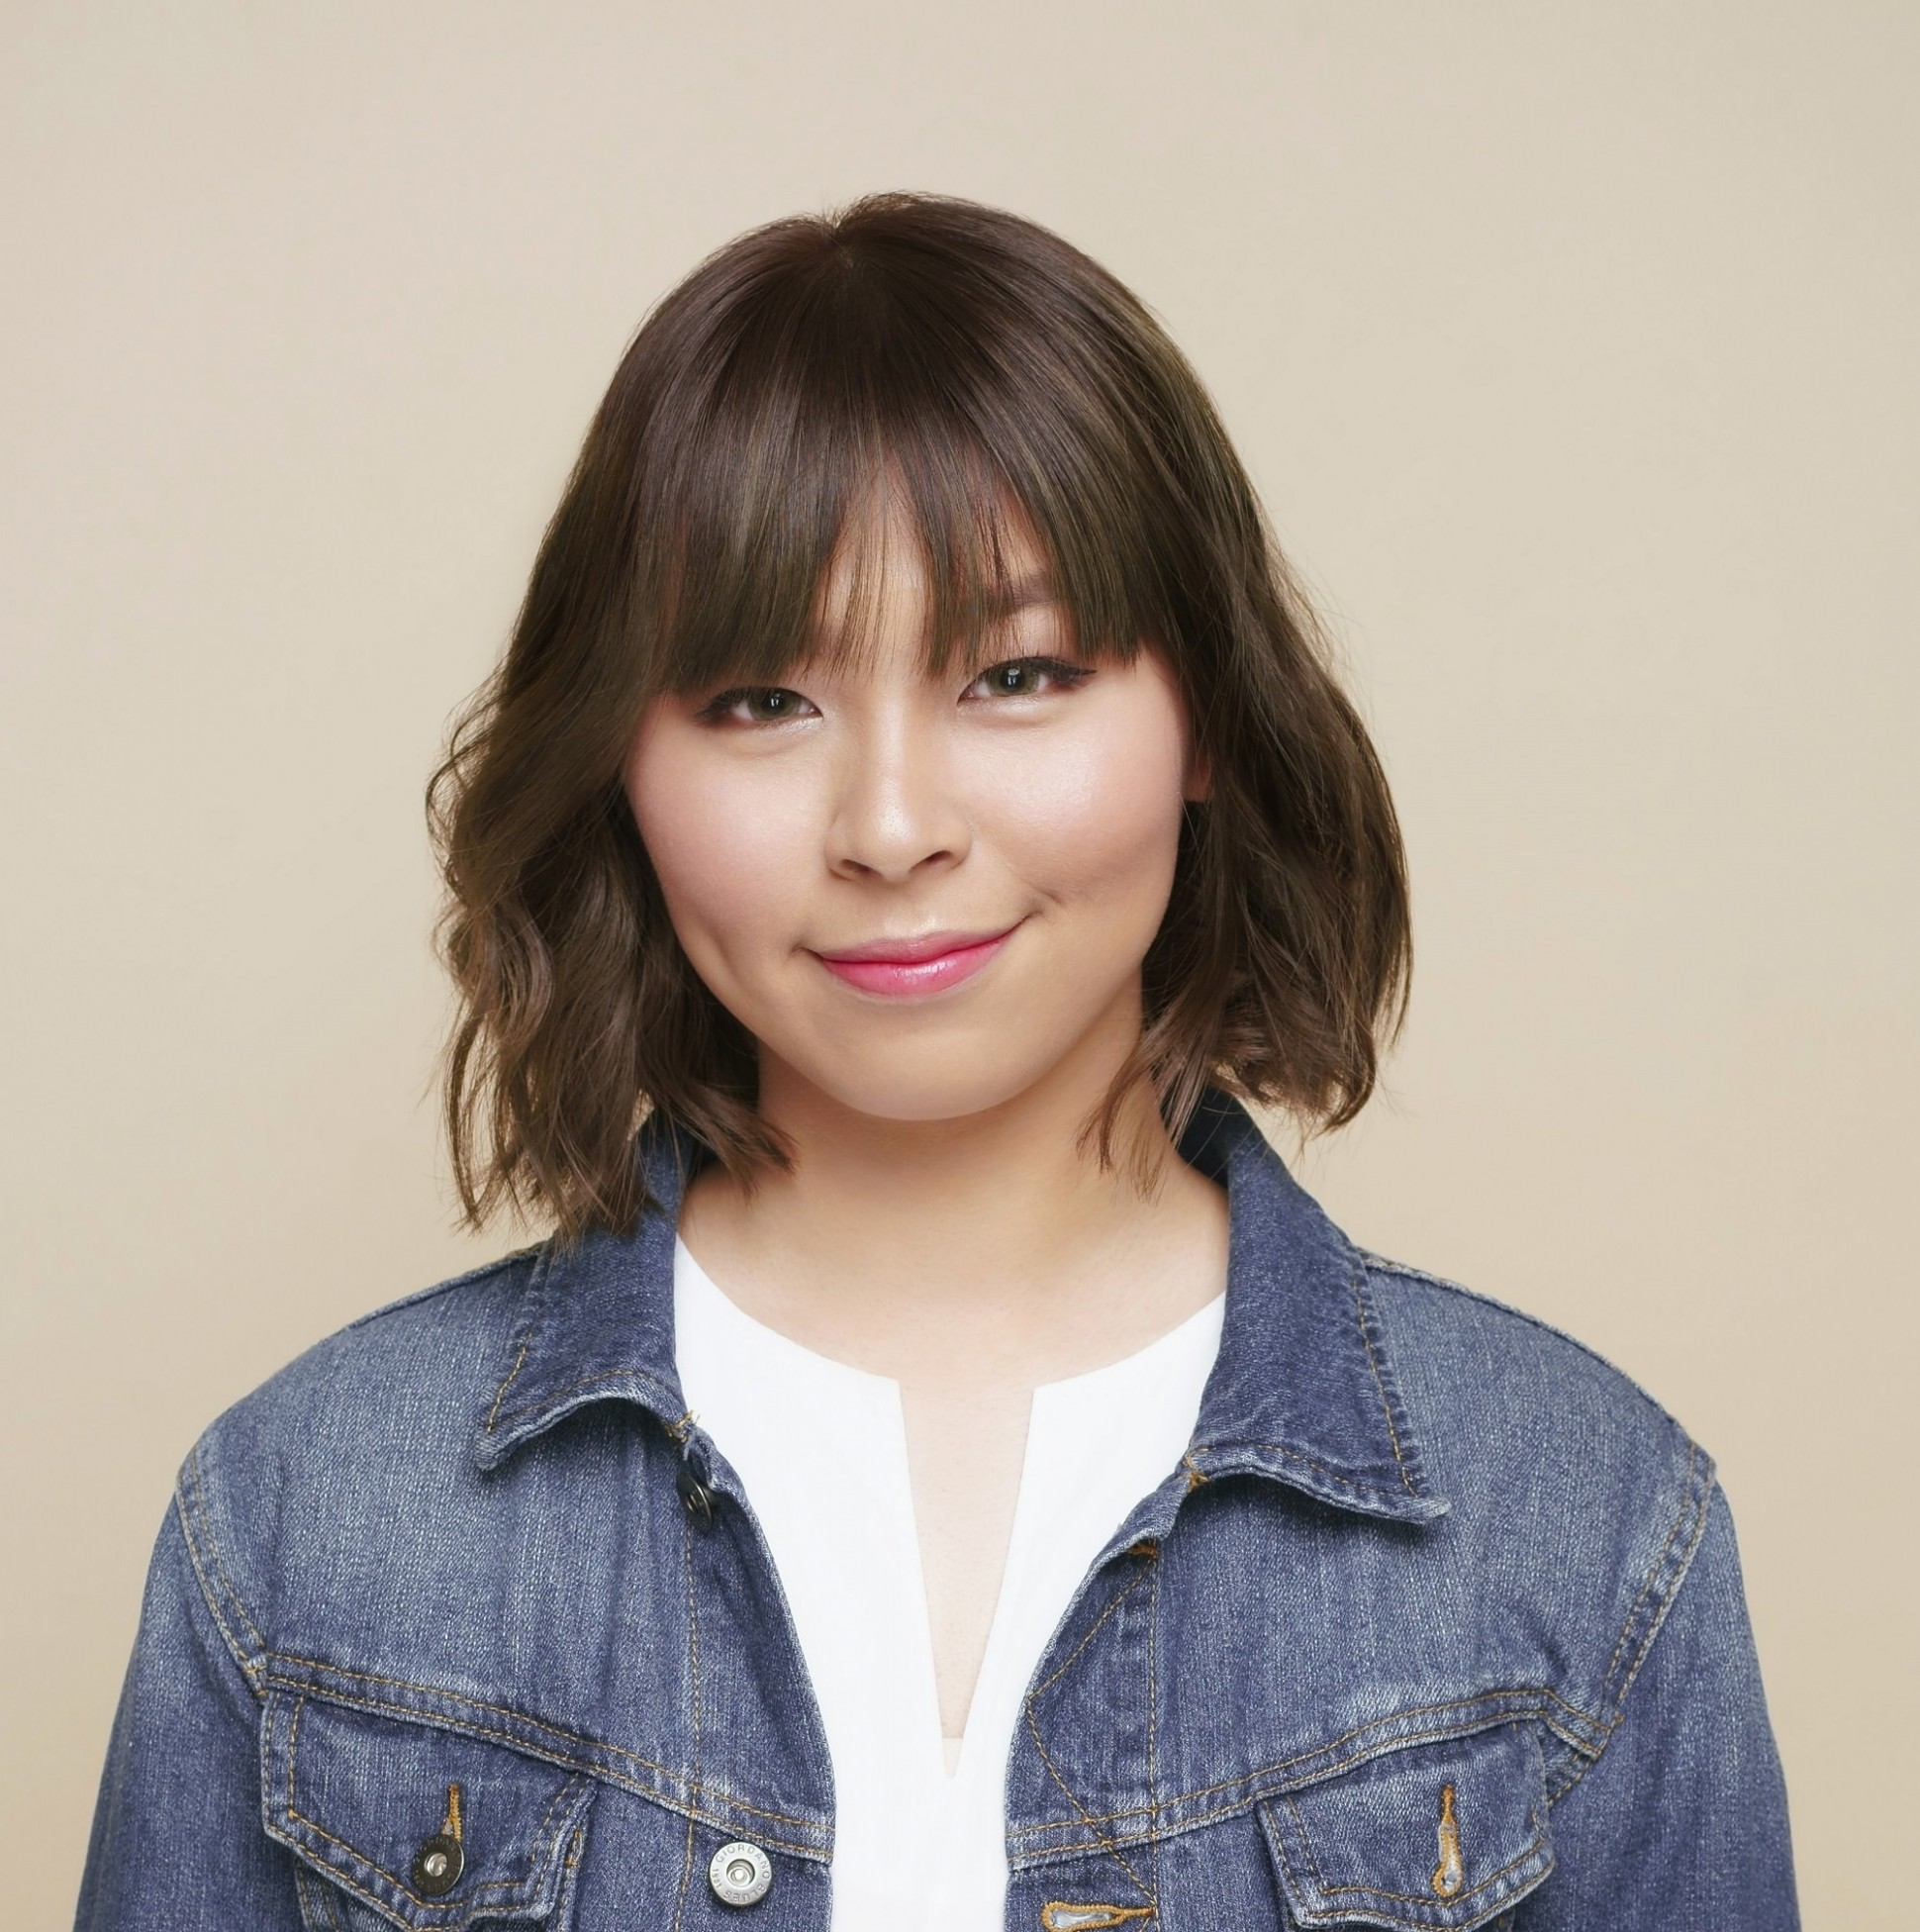 Short Hair For Round Face: 8 Stylish Ideas For 8! Asian Round Face Haircut